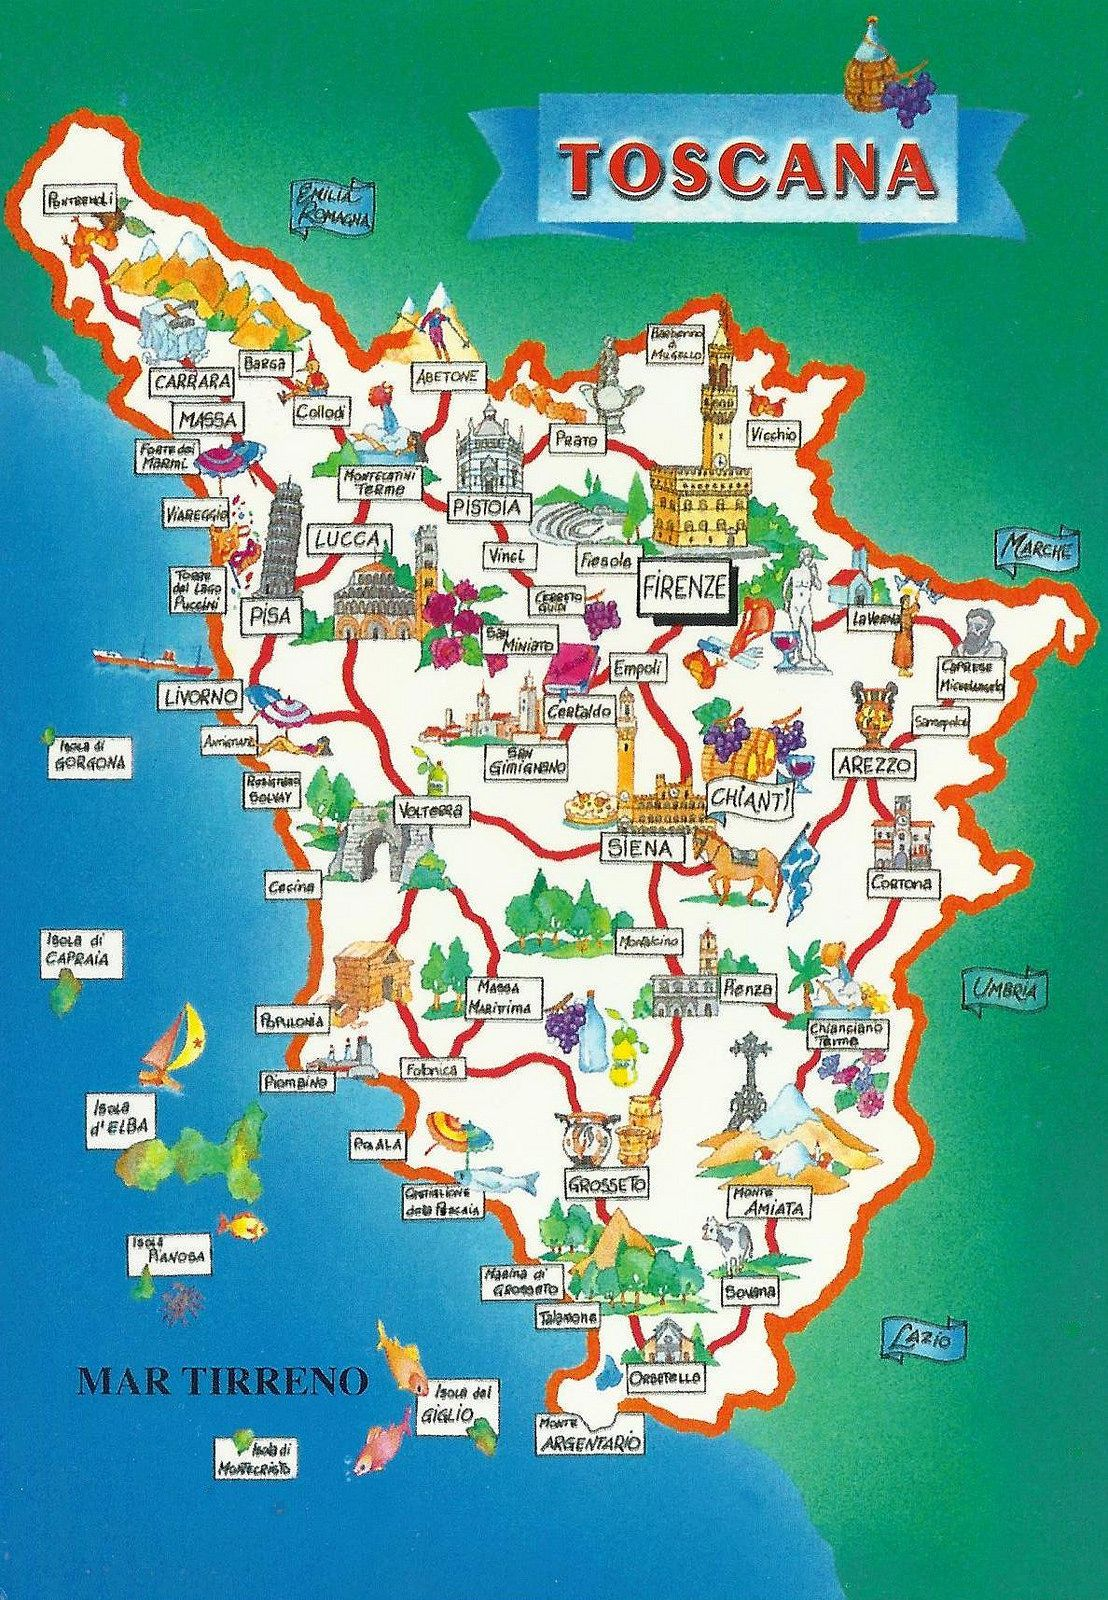 Toscana Map In 2020 Toscana Italy Map Of Tuscany Italy Tuscany Map